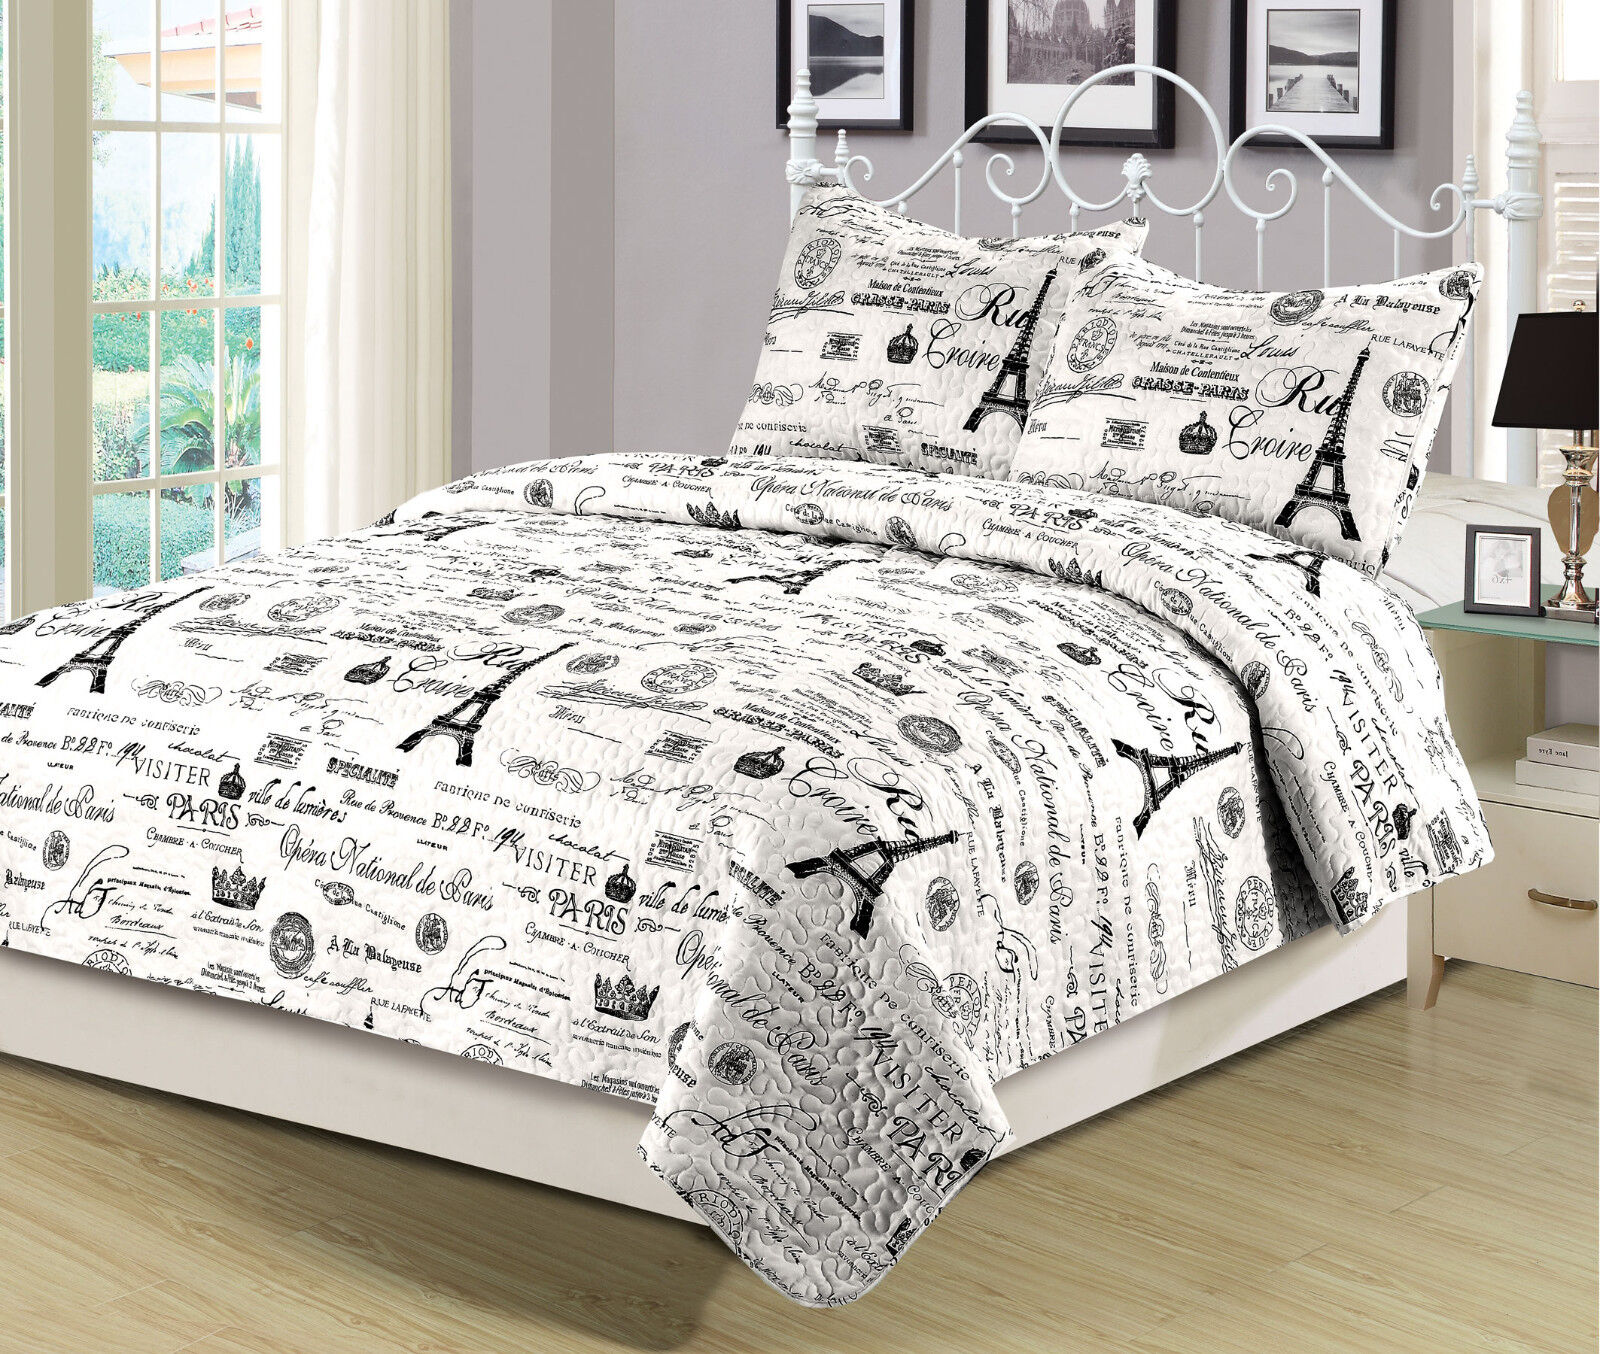 Twin Queen Or King Size Bedding Quilt Set Paris Eiffel Tower Black And White